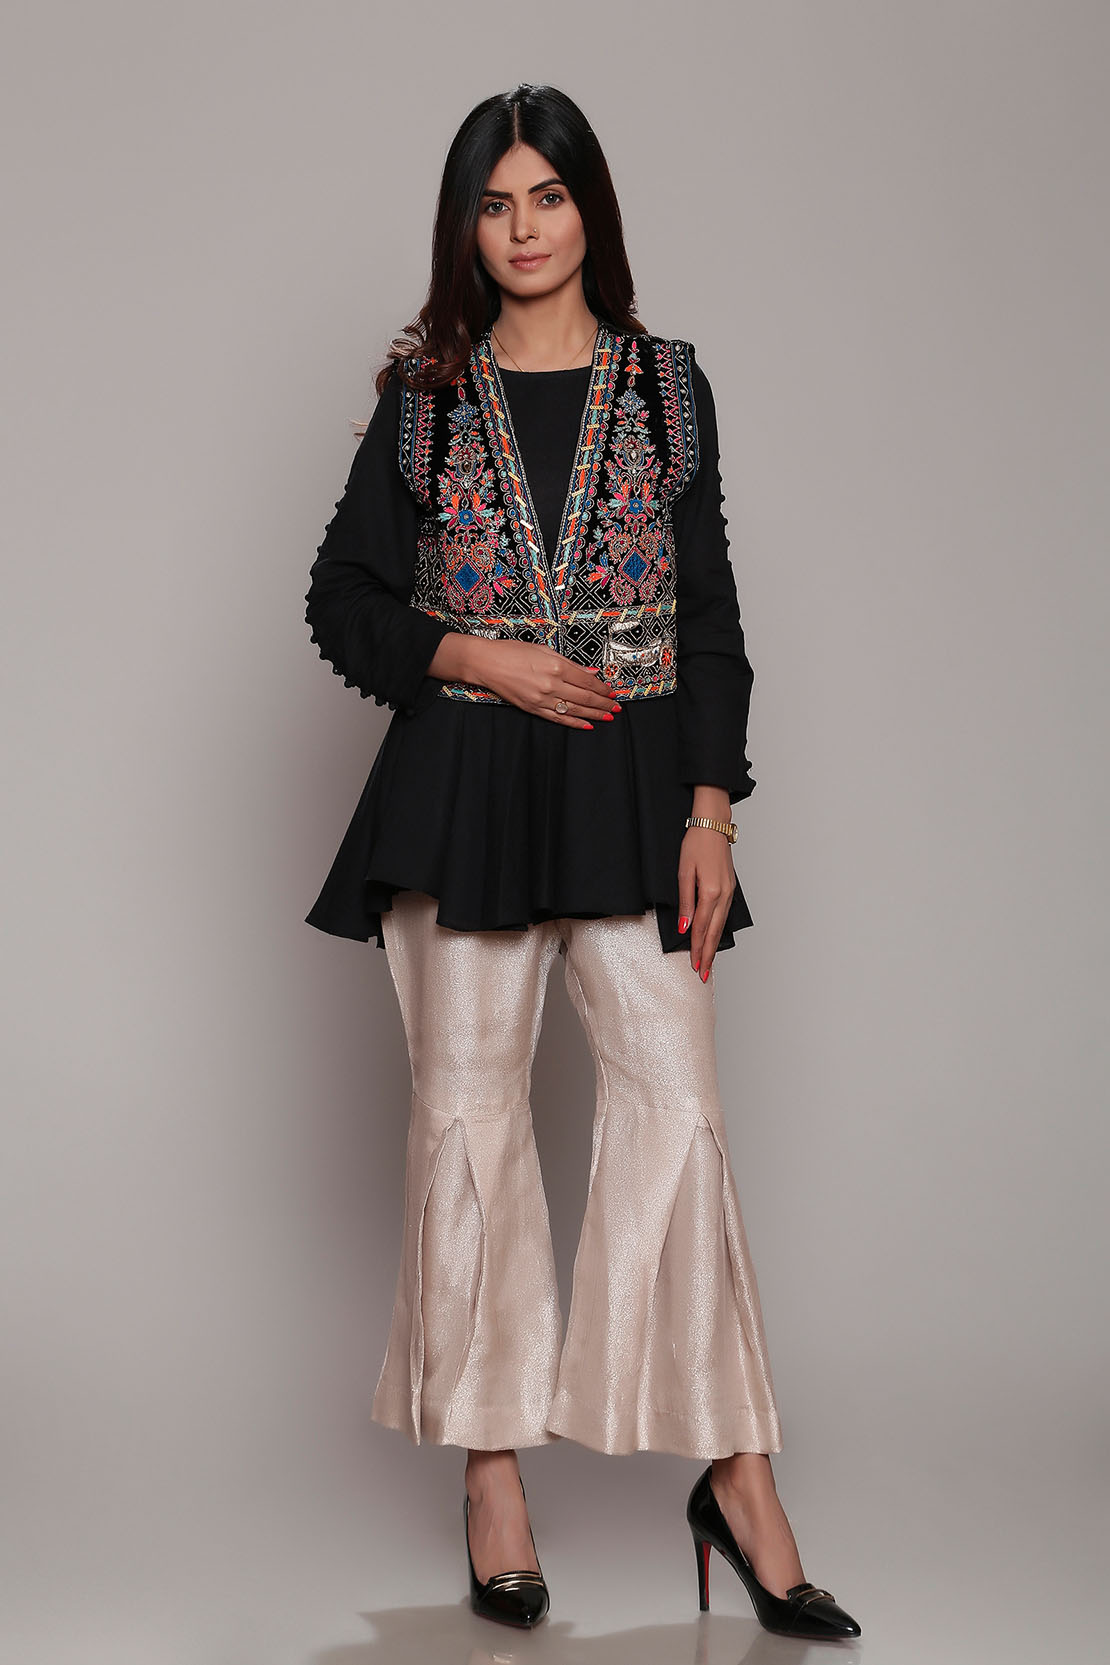 Latest Party Wear Dresses Embroidered Suits 2019 Designs